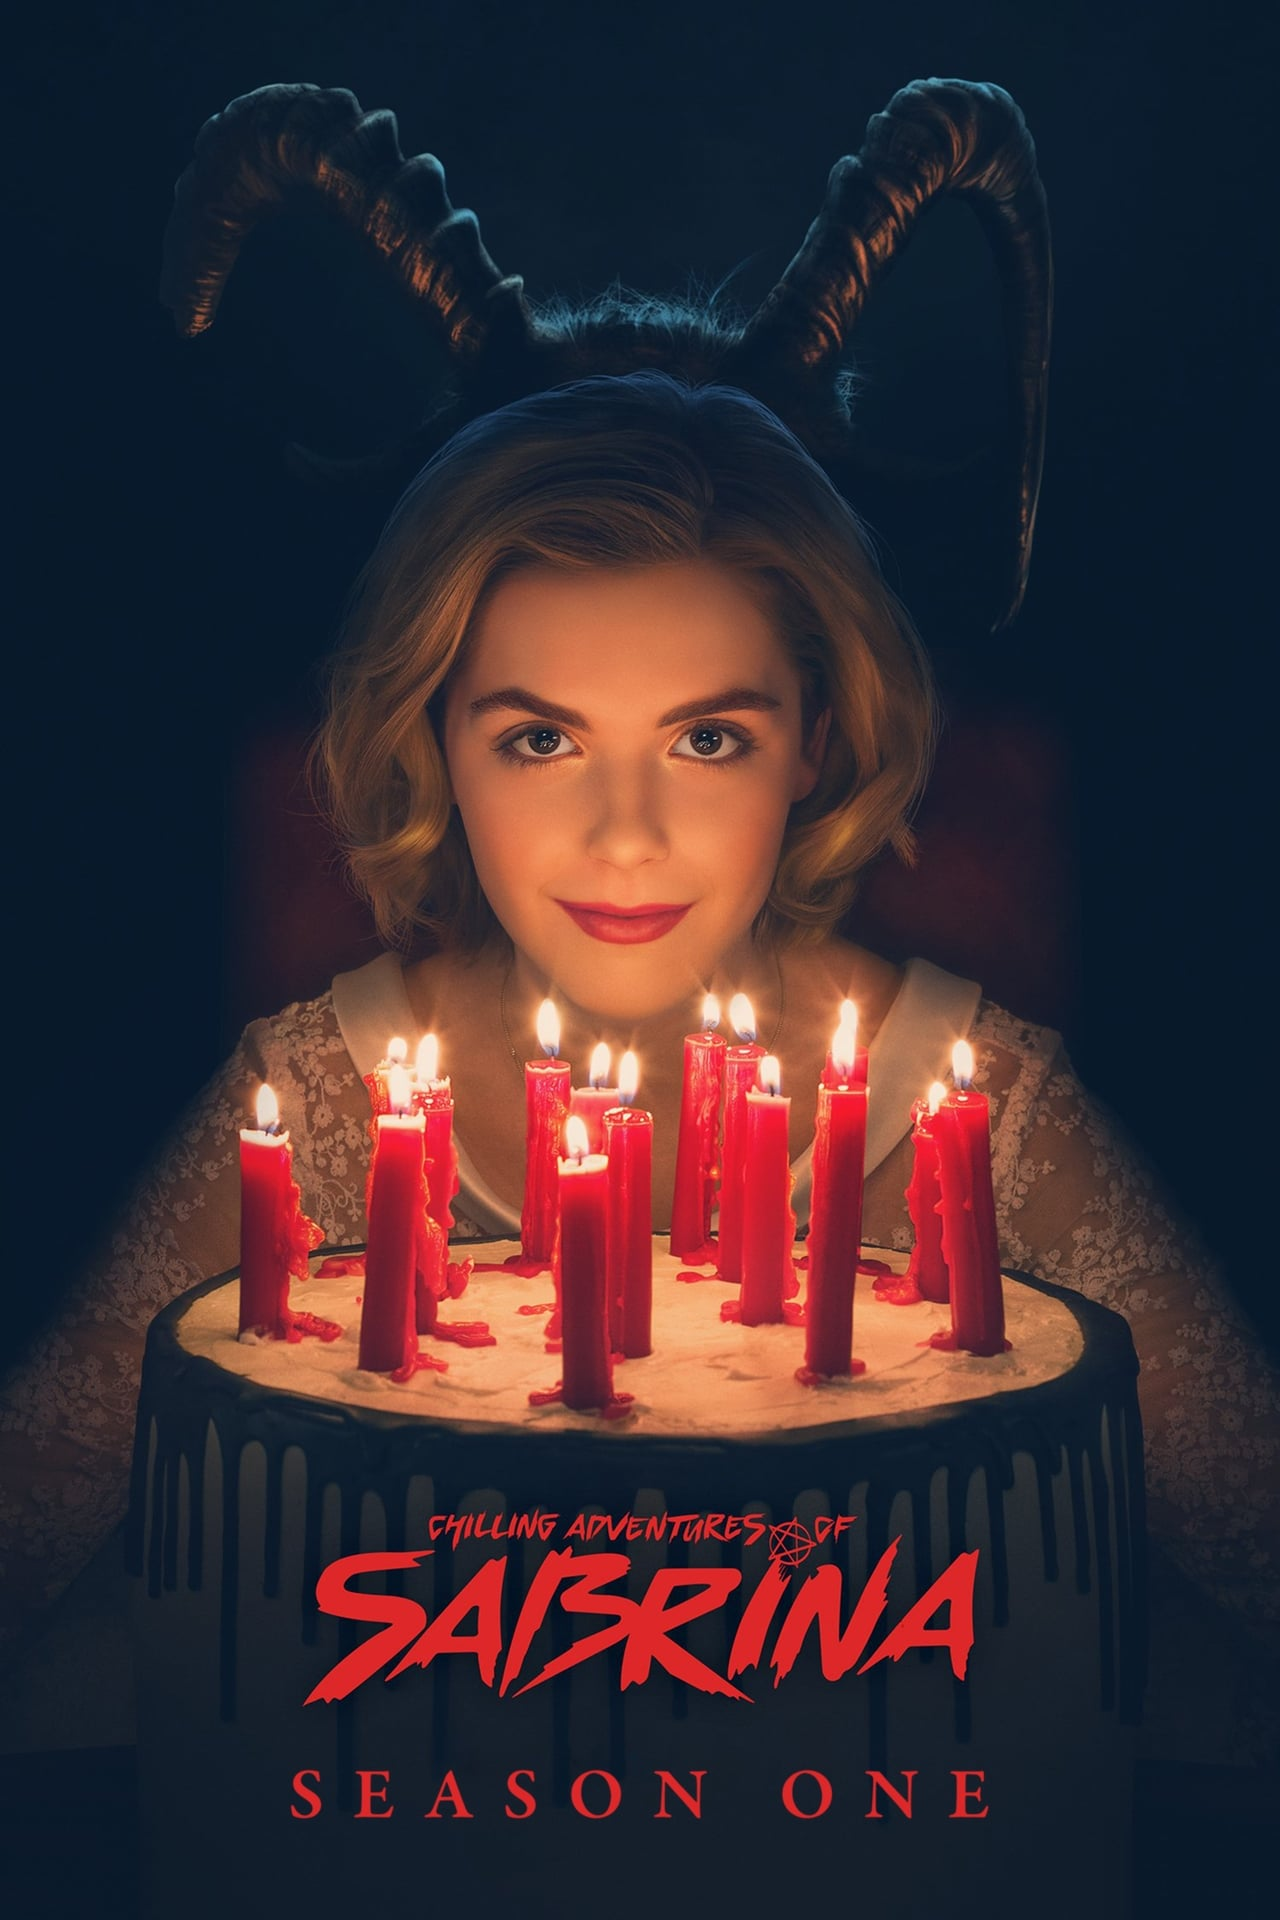 Watch Chilling Adventures Of Sabrina Season 1 Online